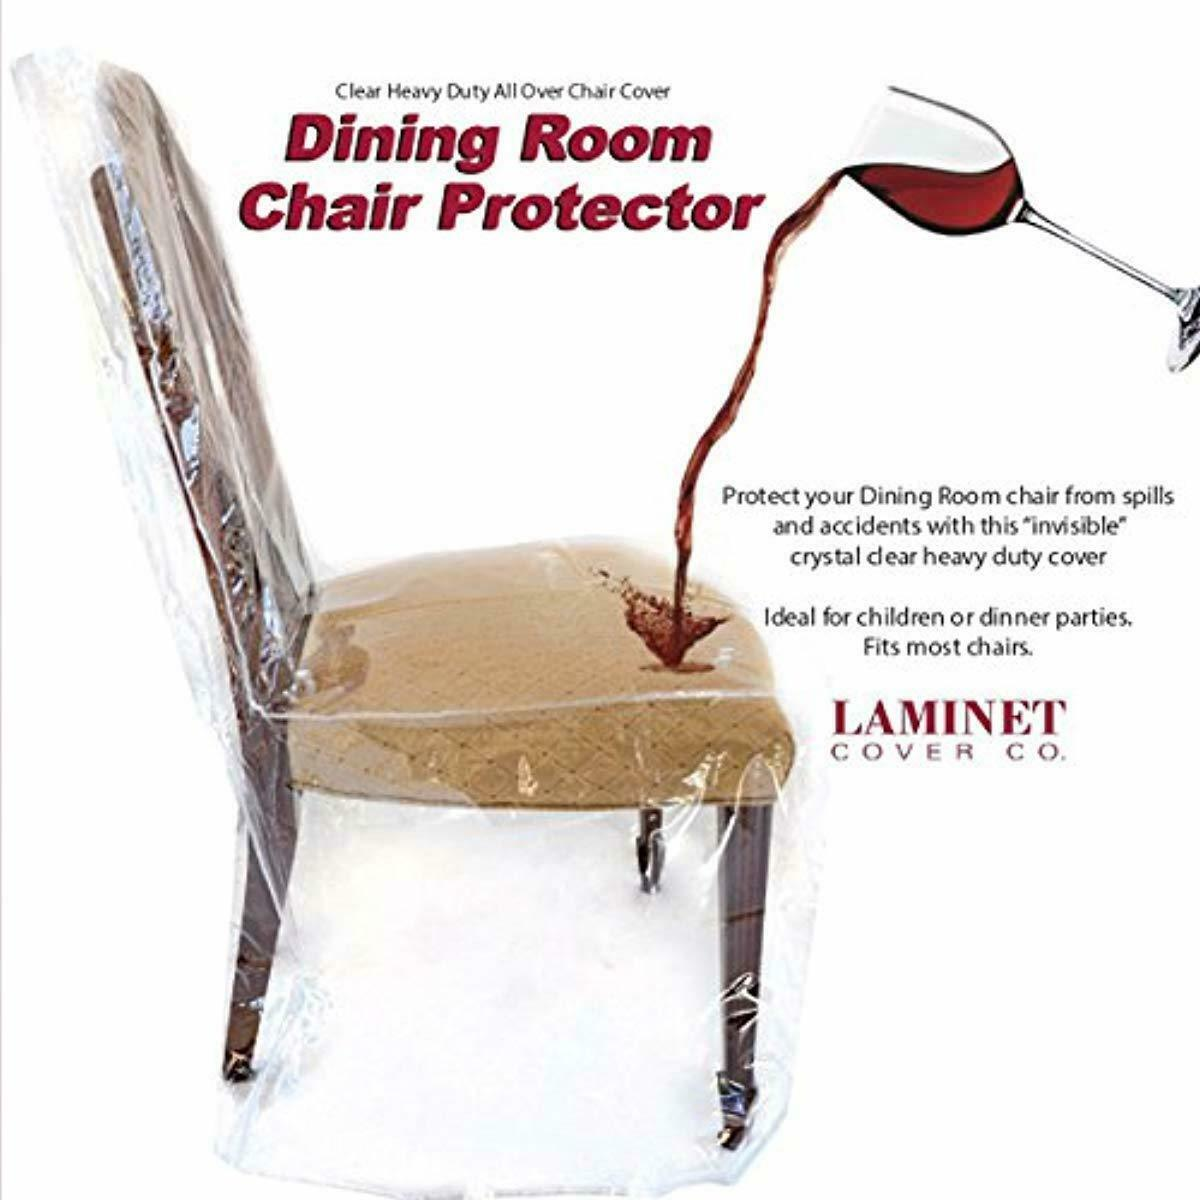 Plastic Cover For Dining Room Chairs, How To Cover Dining Room Chairs With Plastic